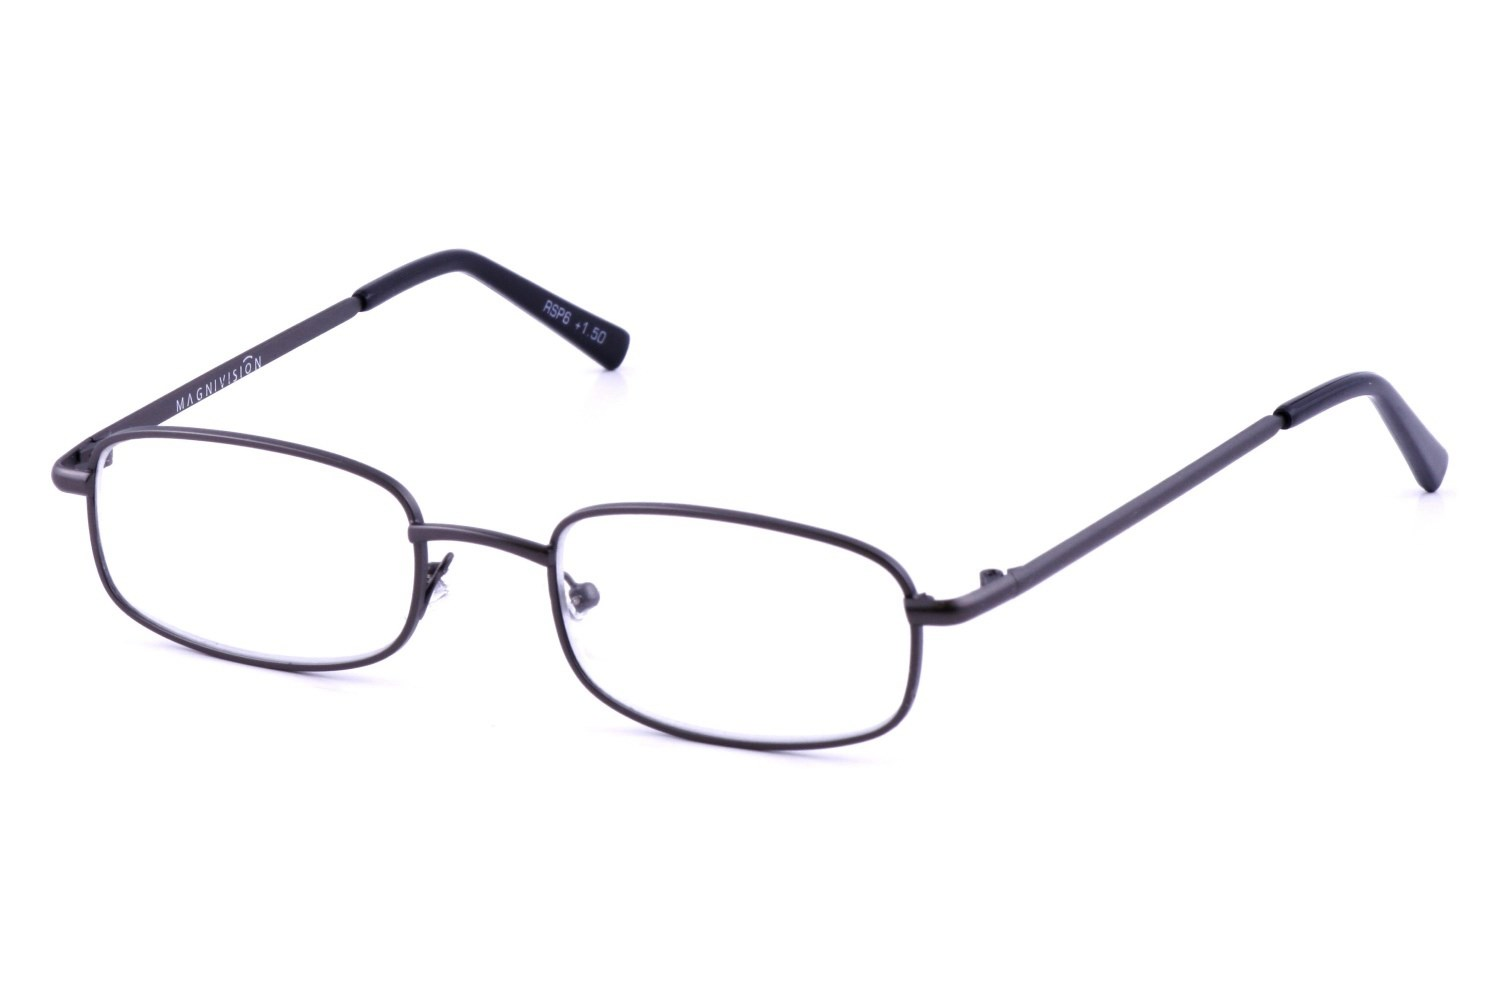 Magnivision Council Mens Reading Glasses 3 Pack